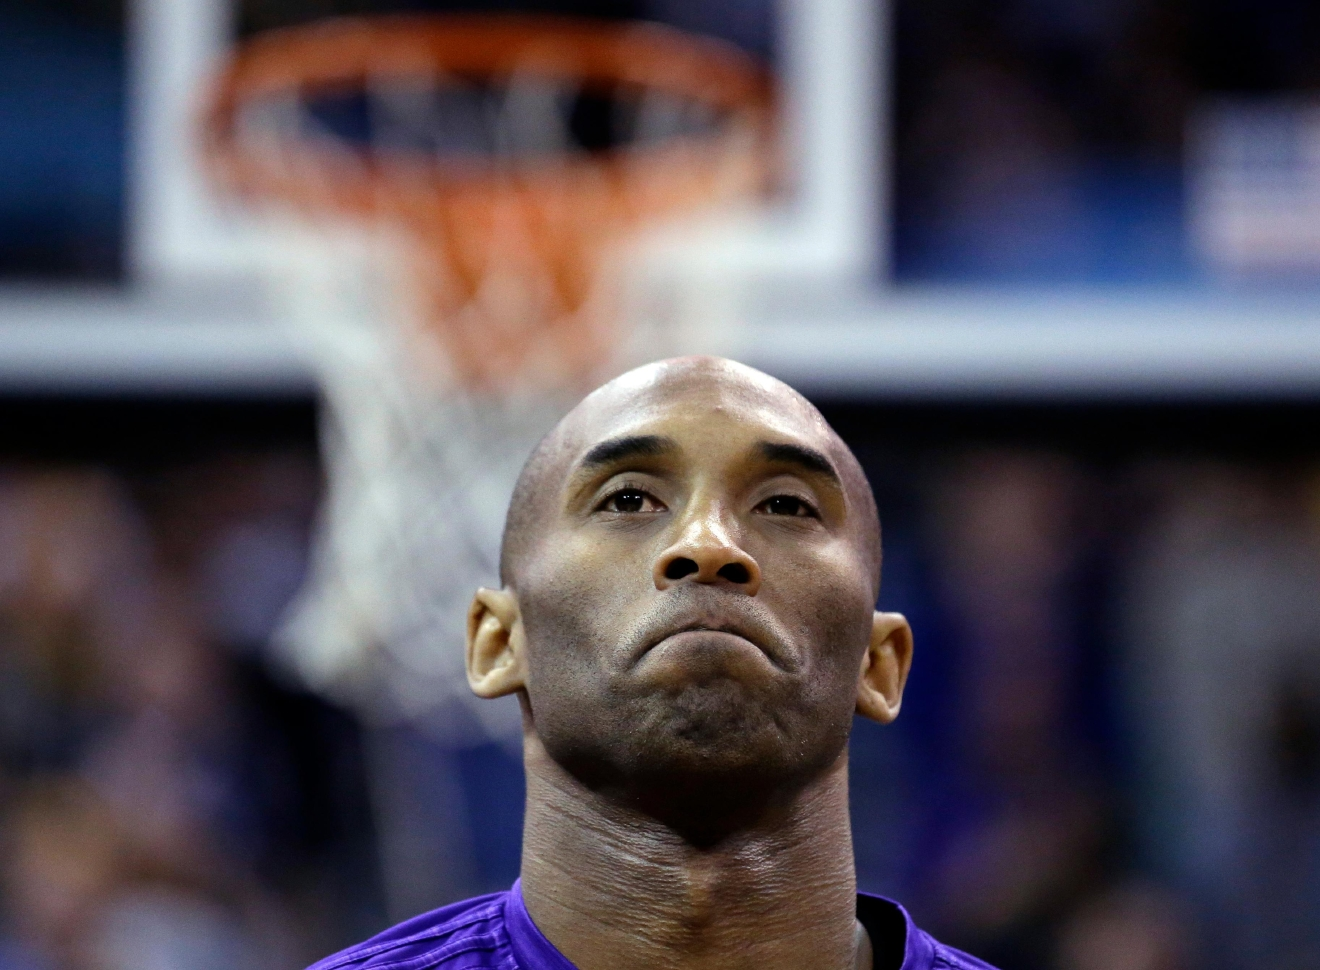 Los Angeles Lakers forward Kobe Bryant looks on before the start of an NBA basketball game against the Utah Jazz, Monday, March 28, 2016, in Salt Lake City. (AP Photo/Rick Bowmer)